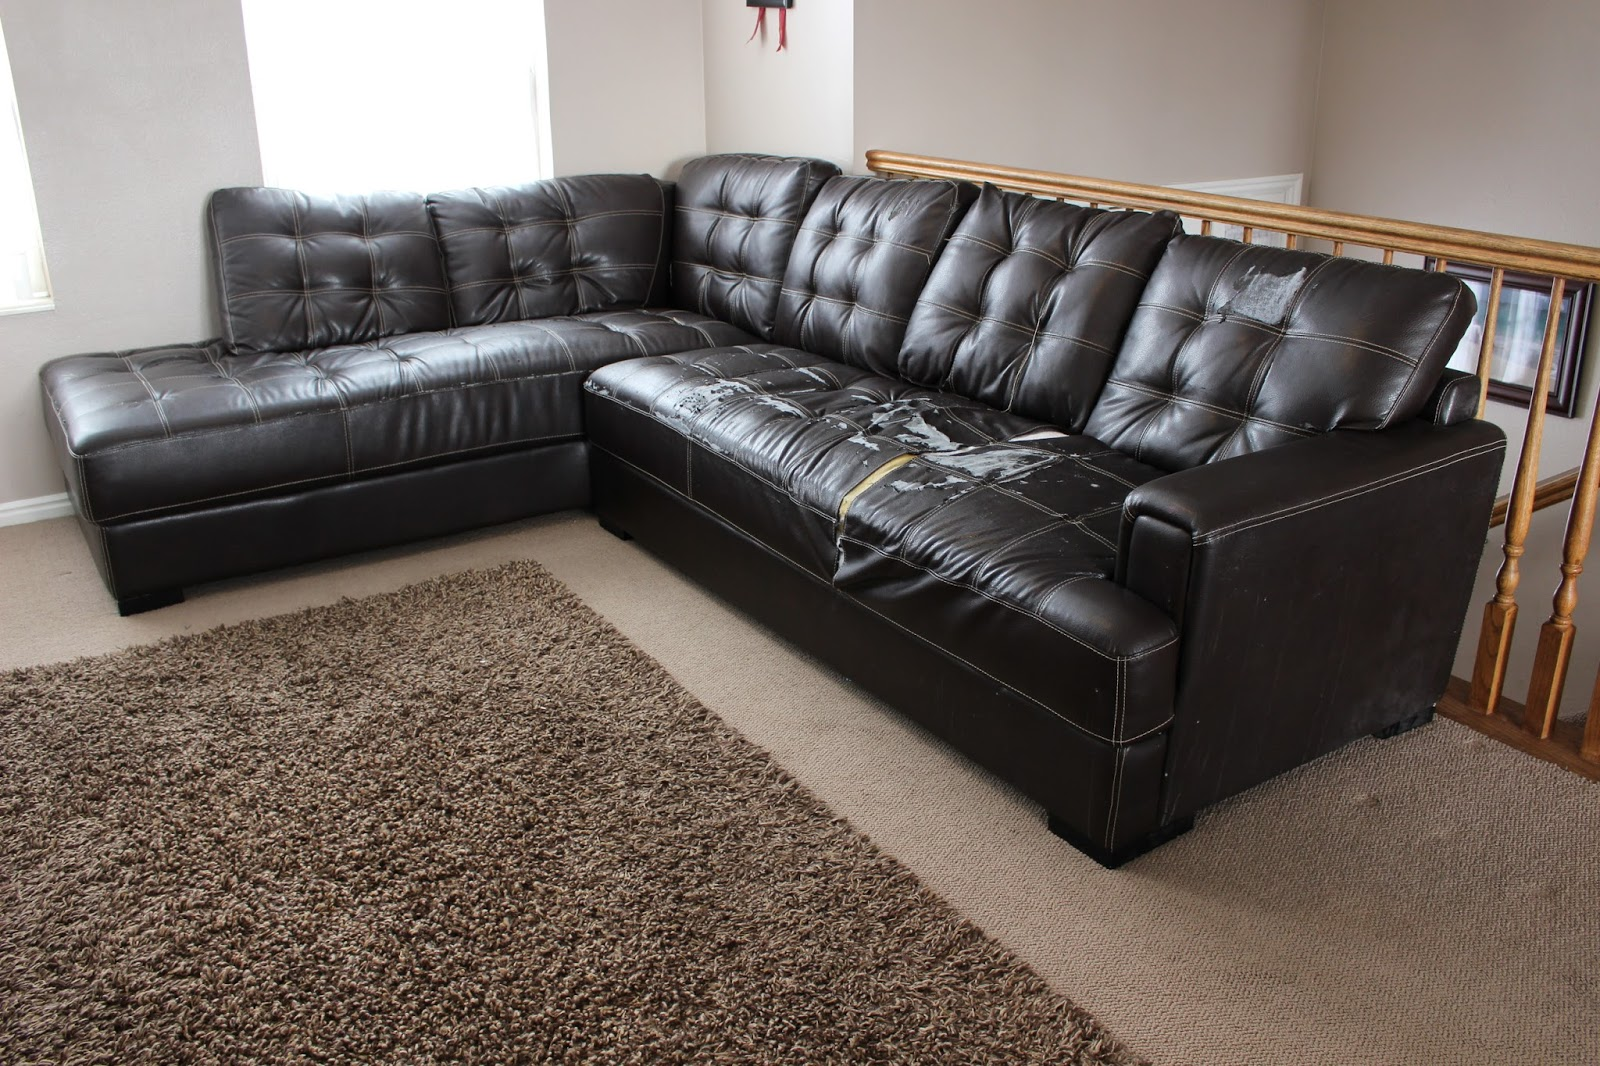 Someone Posted A Free Sectional The Only Problem Is It Was Made Of This Pleather That Ripped And Ling But I Decided Wanted Anyway